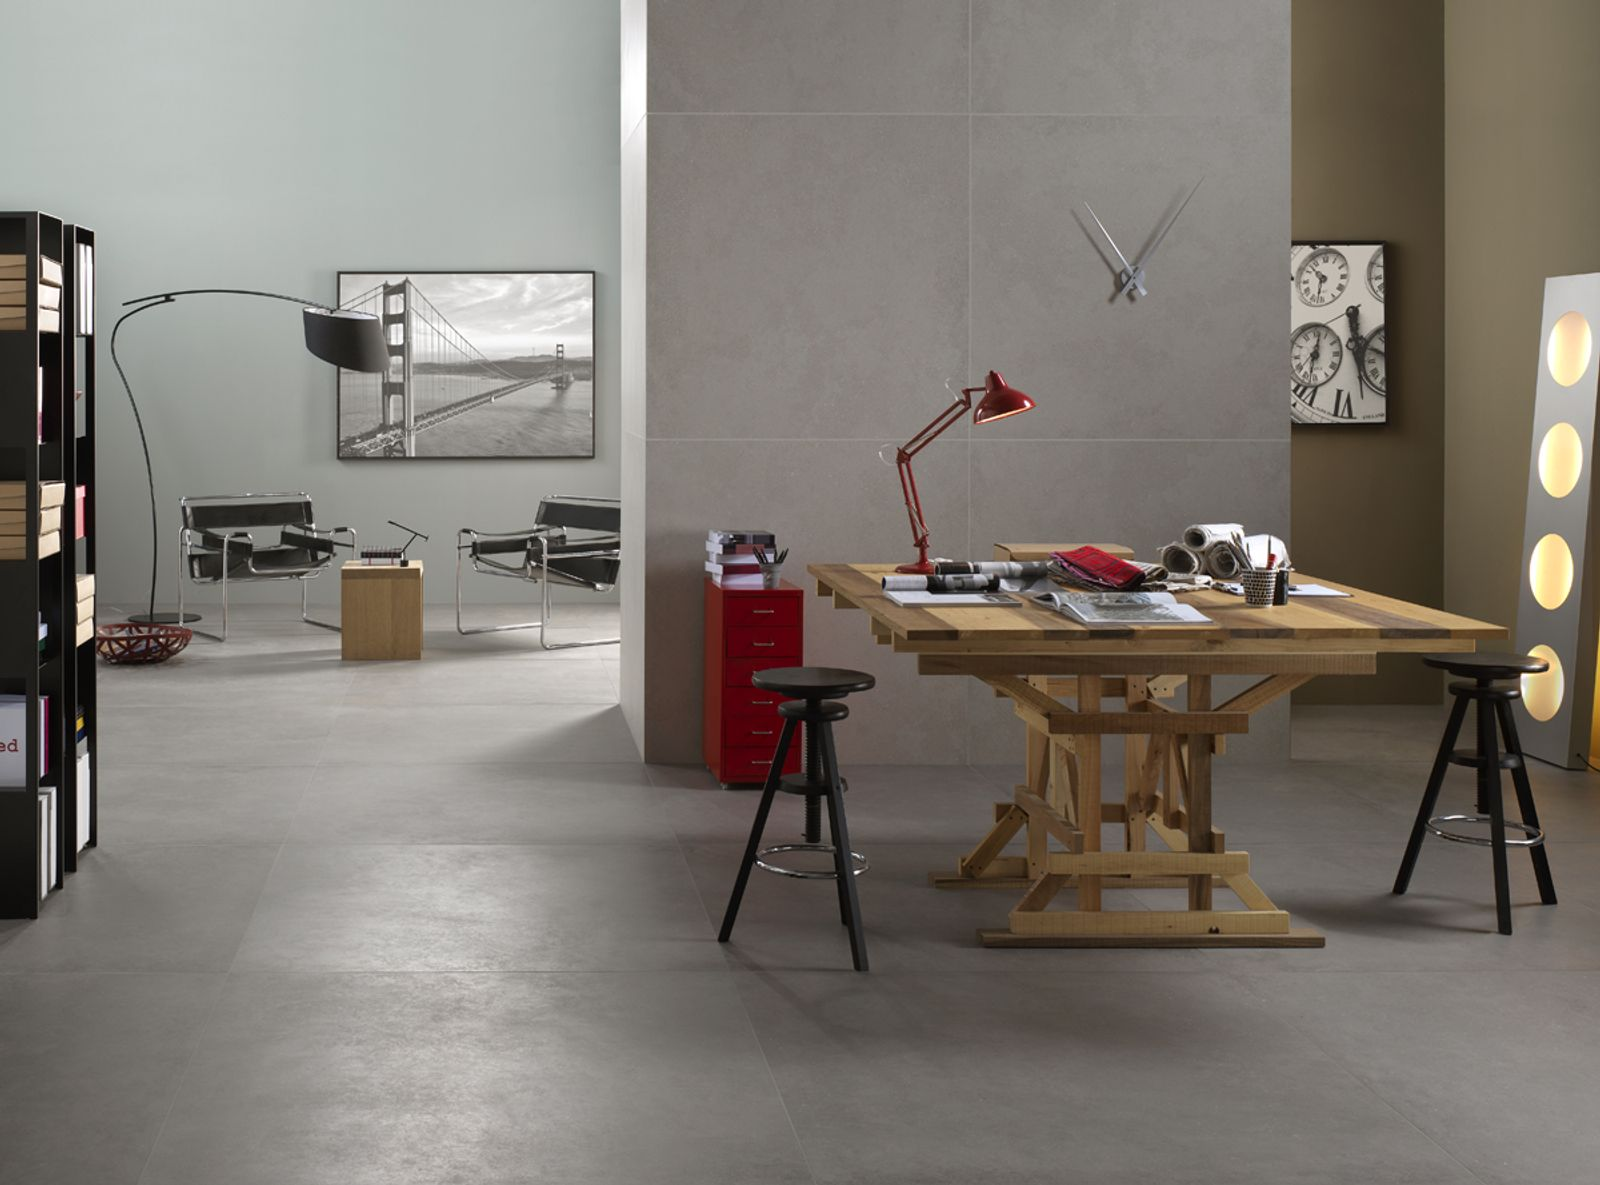 The concrete is turned into a tile with a clear contemporary mood, designed to inspire and surround exterior surfaces, but also ventilated facades and high-traffic public spaces. Its minimalist style features in flooring that is highly modular in different sizes depending on requirements and the desired visual effect. - AM CONCRETE 2 - Imola Ceramica